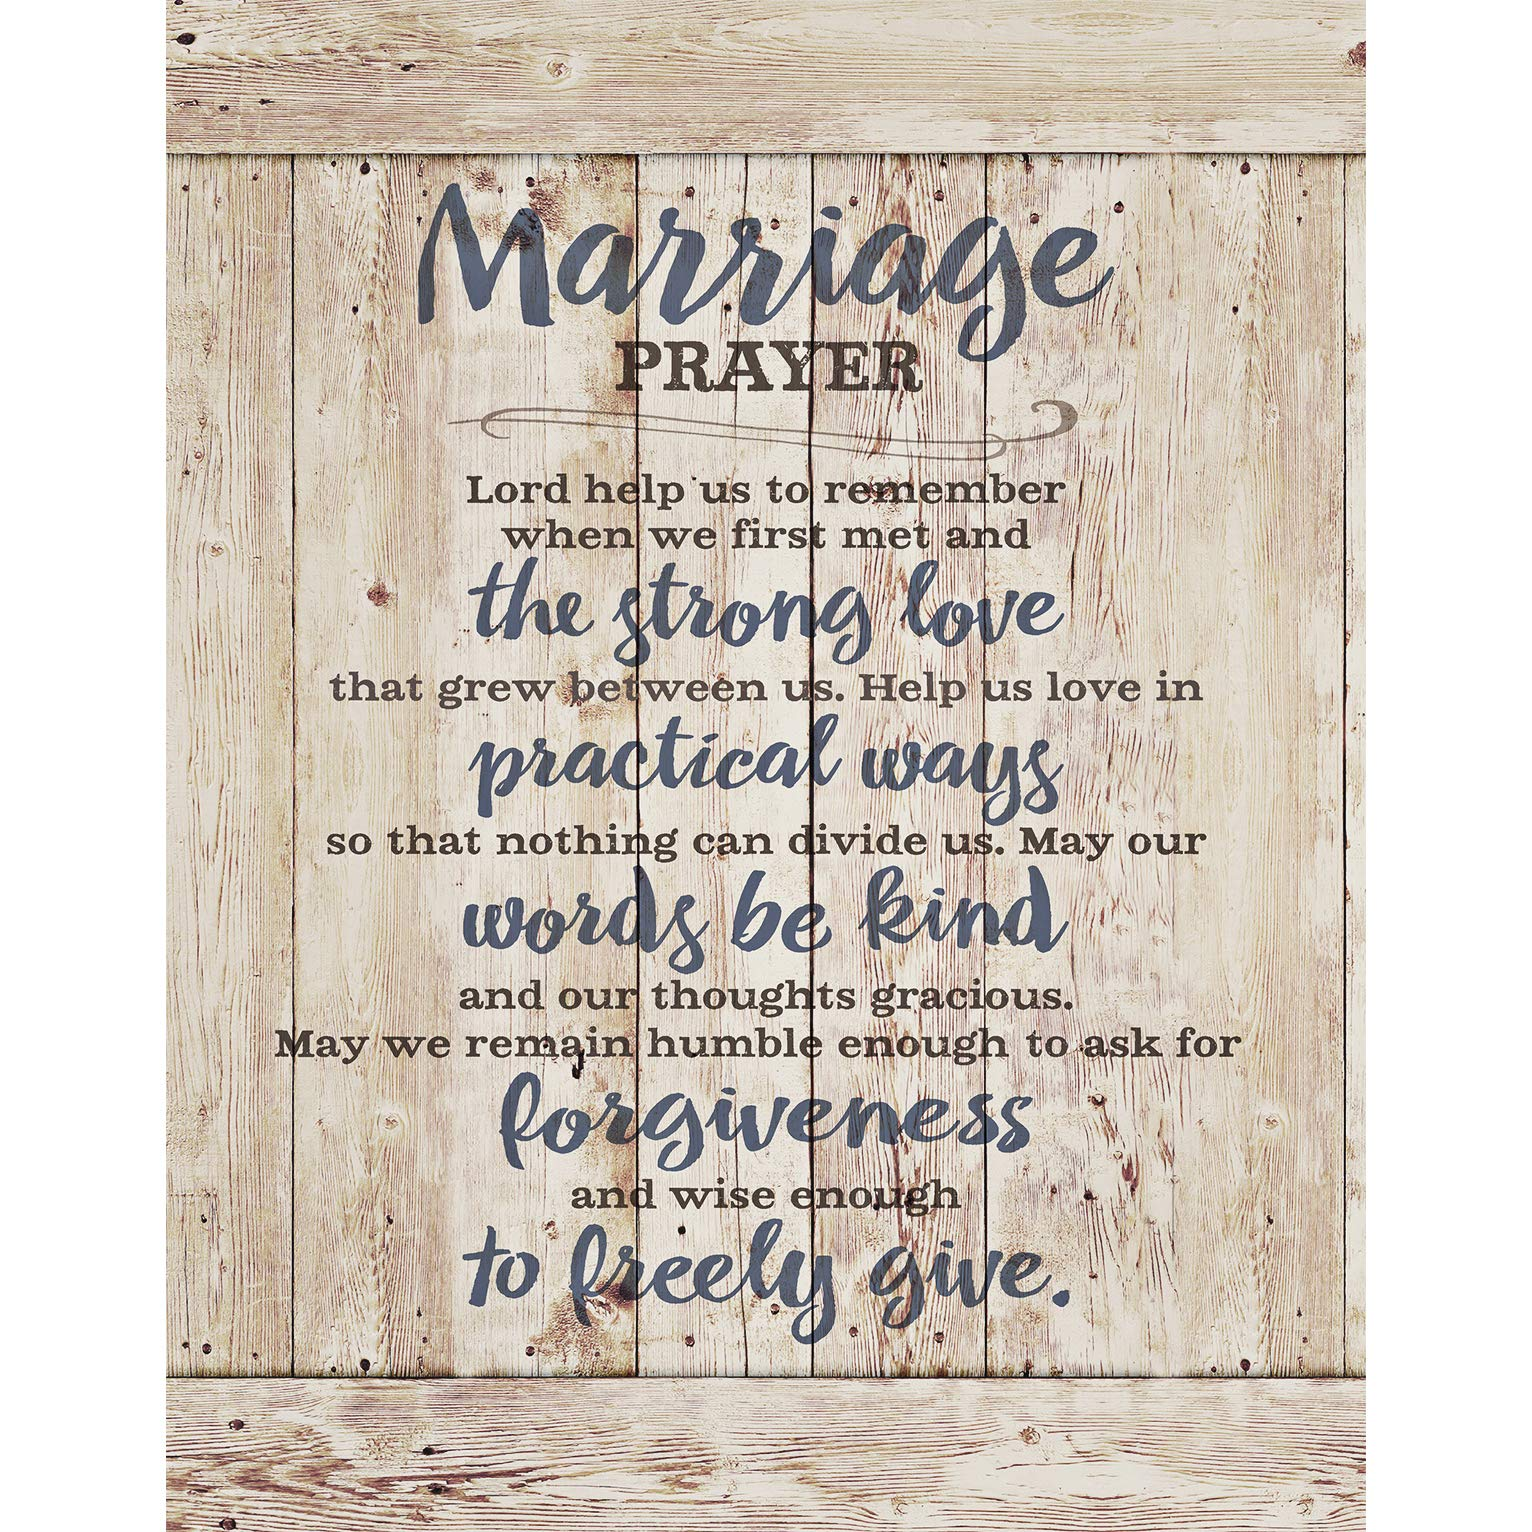 Marriage Prayer Wood Plaque Inspiring Quote 11.75''x15'' - Classy Vertical Frame Wall Hanging Decoration | Lord, Help us to Remember When we First met | Christian Family Religious Home Decor Saying by Dexsa